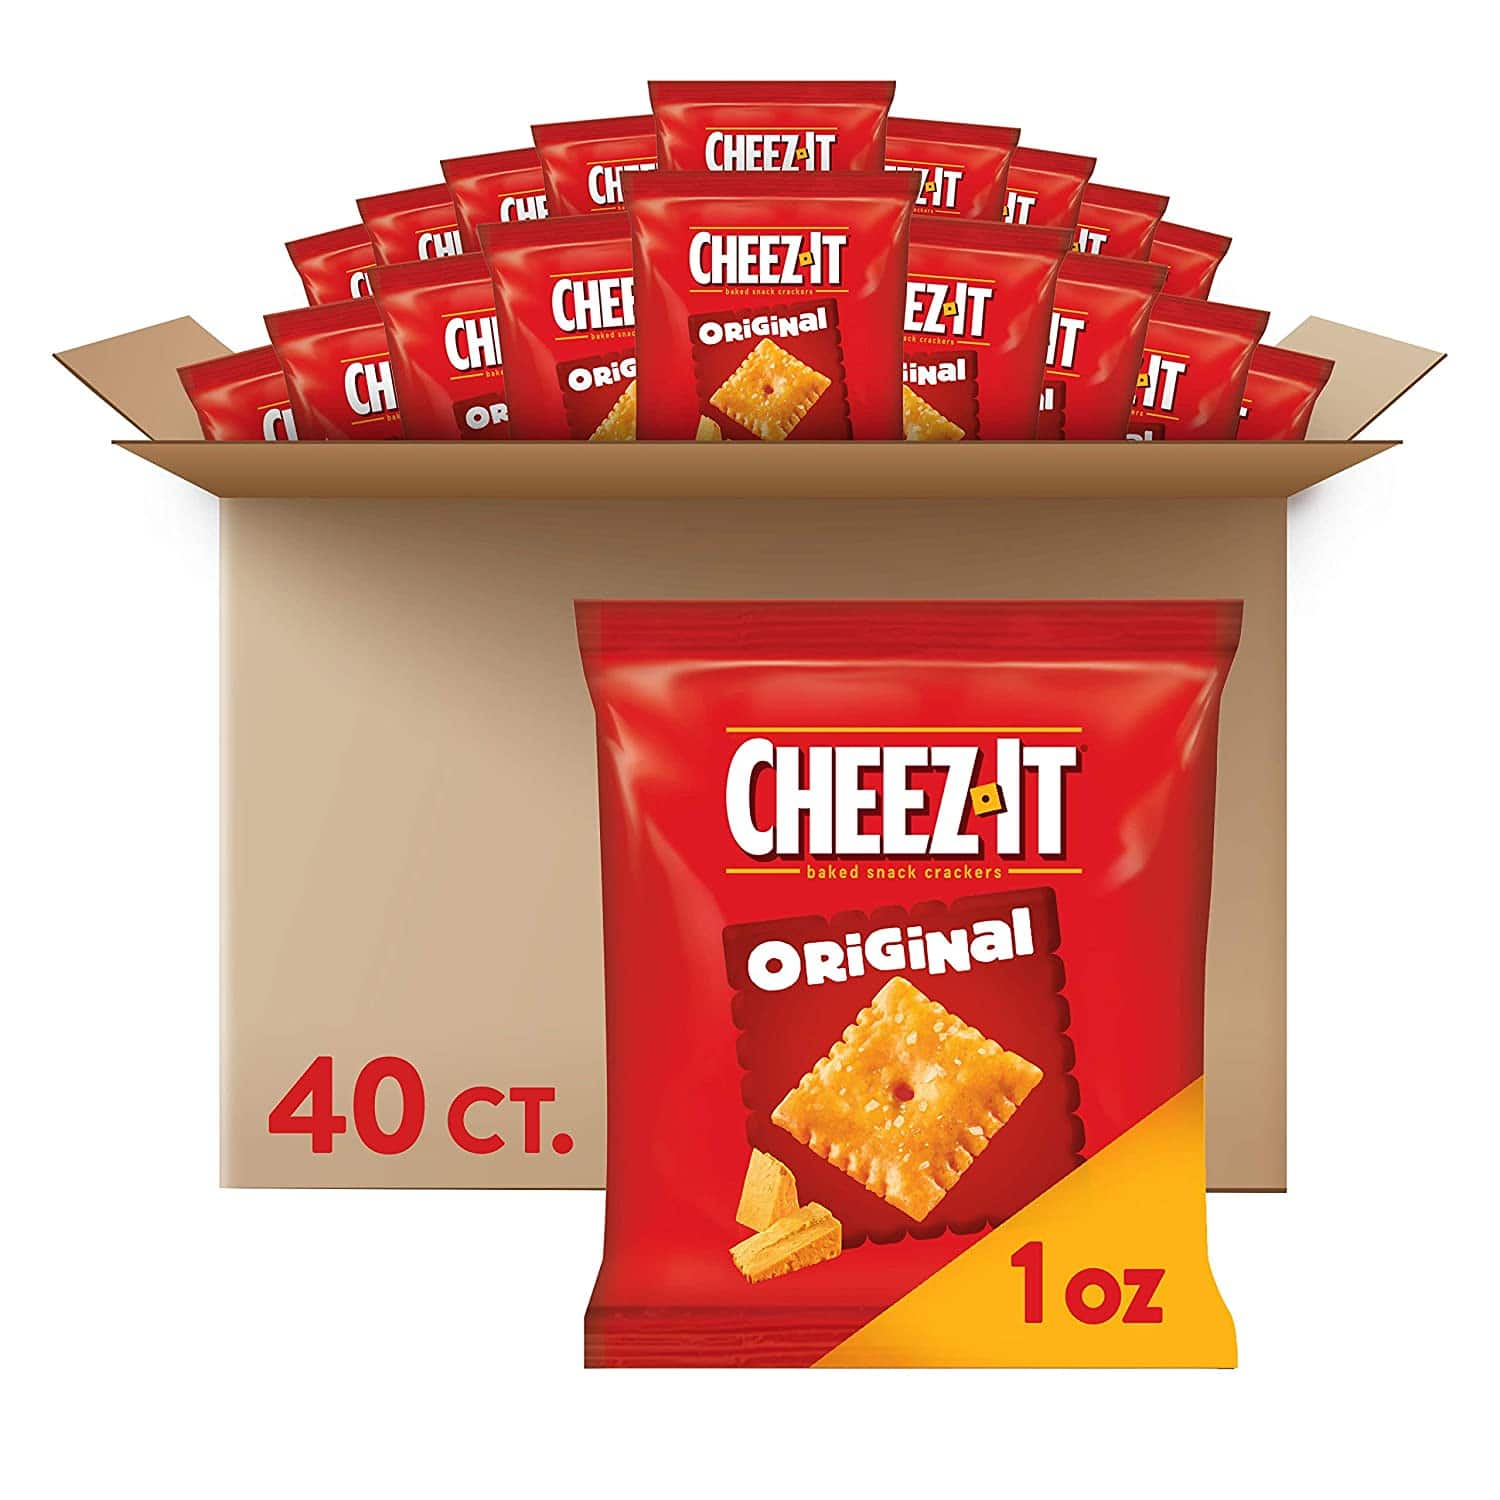 40-Count 1oz Cheez-It Baked Snack Cheese Crackers (Original) $8.53 w/ S&S + Free Shipping w/ Prime or $25+